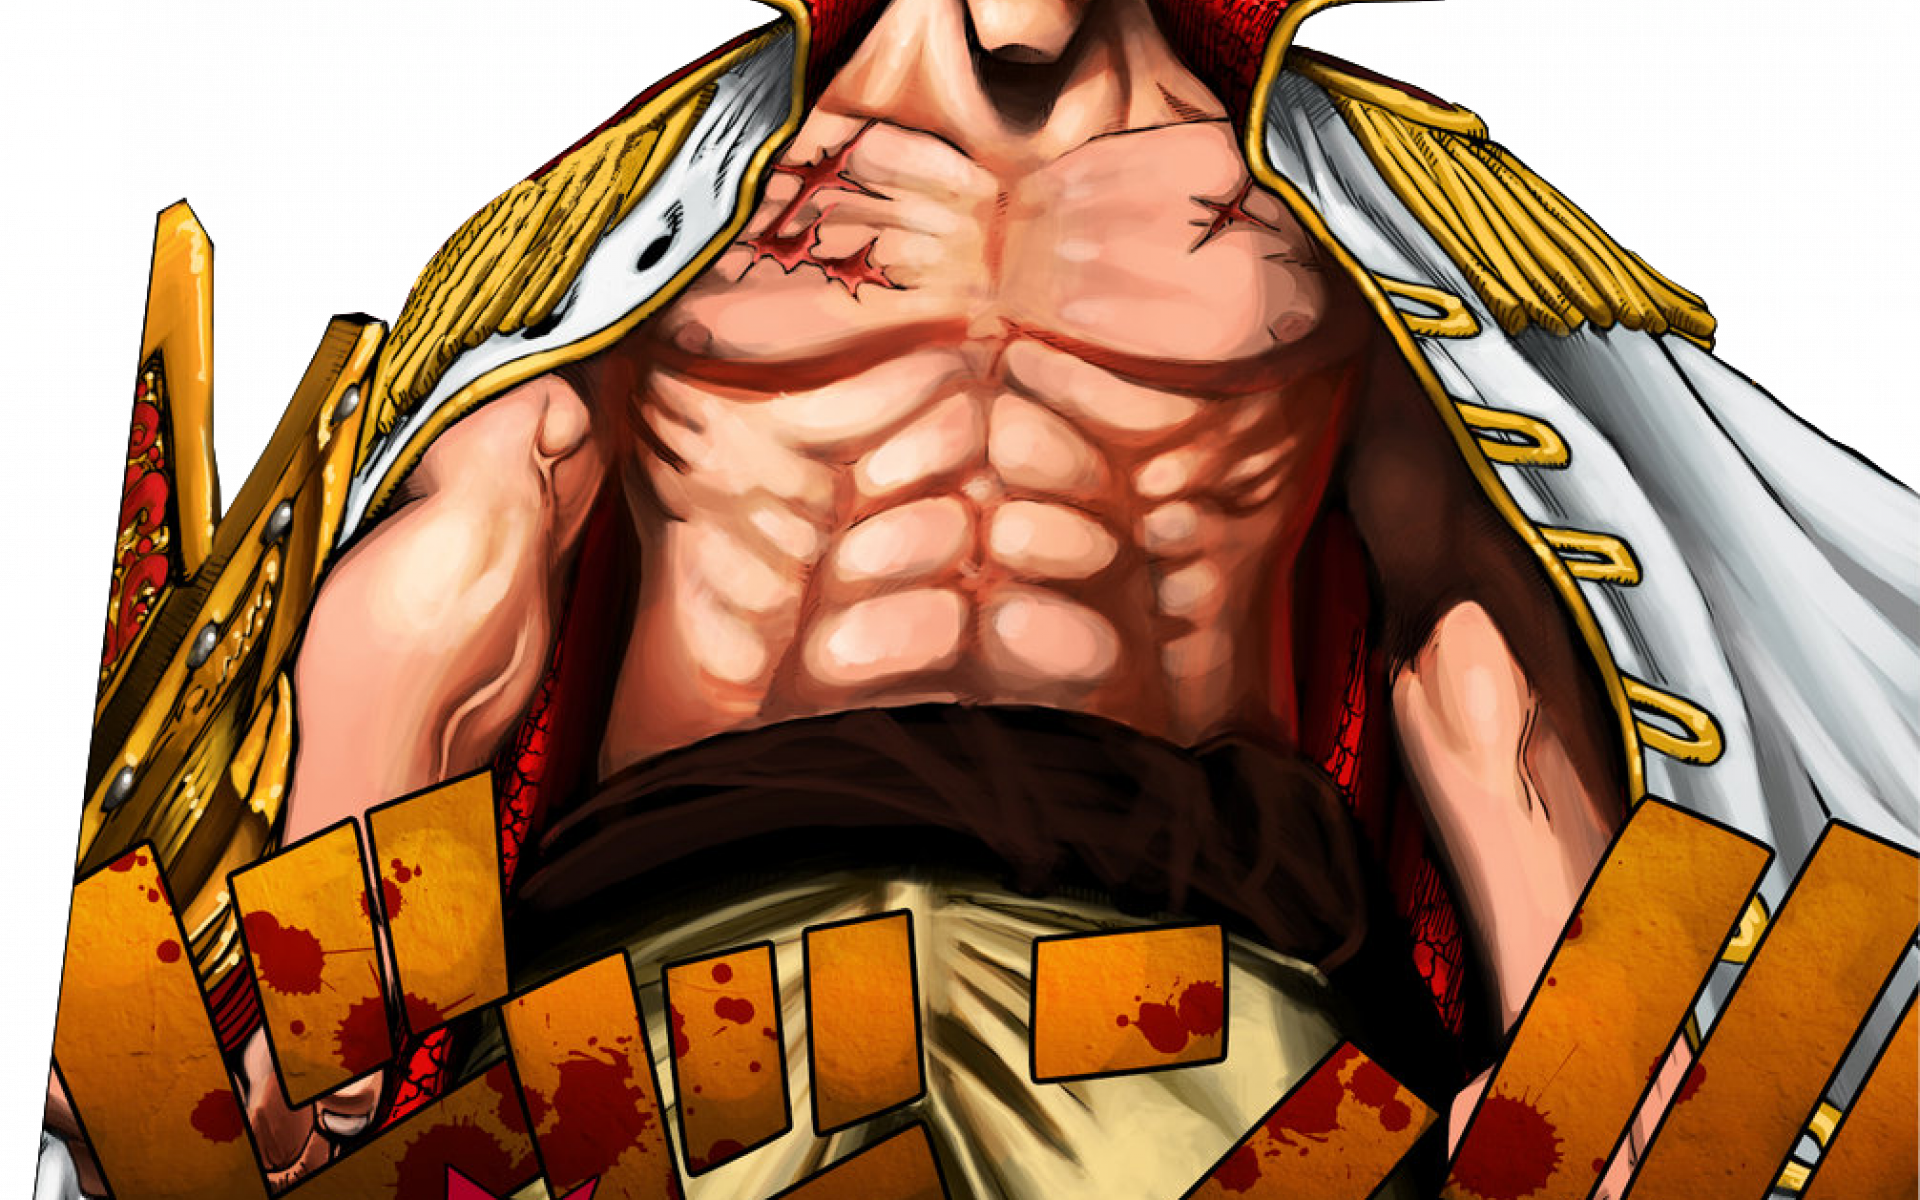 One Piece Whitebeard Wallpaper One Piece White Bird Full Size Png Download Seekpng